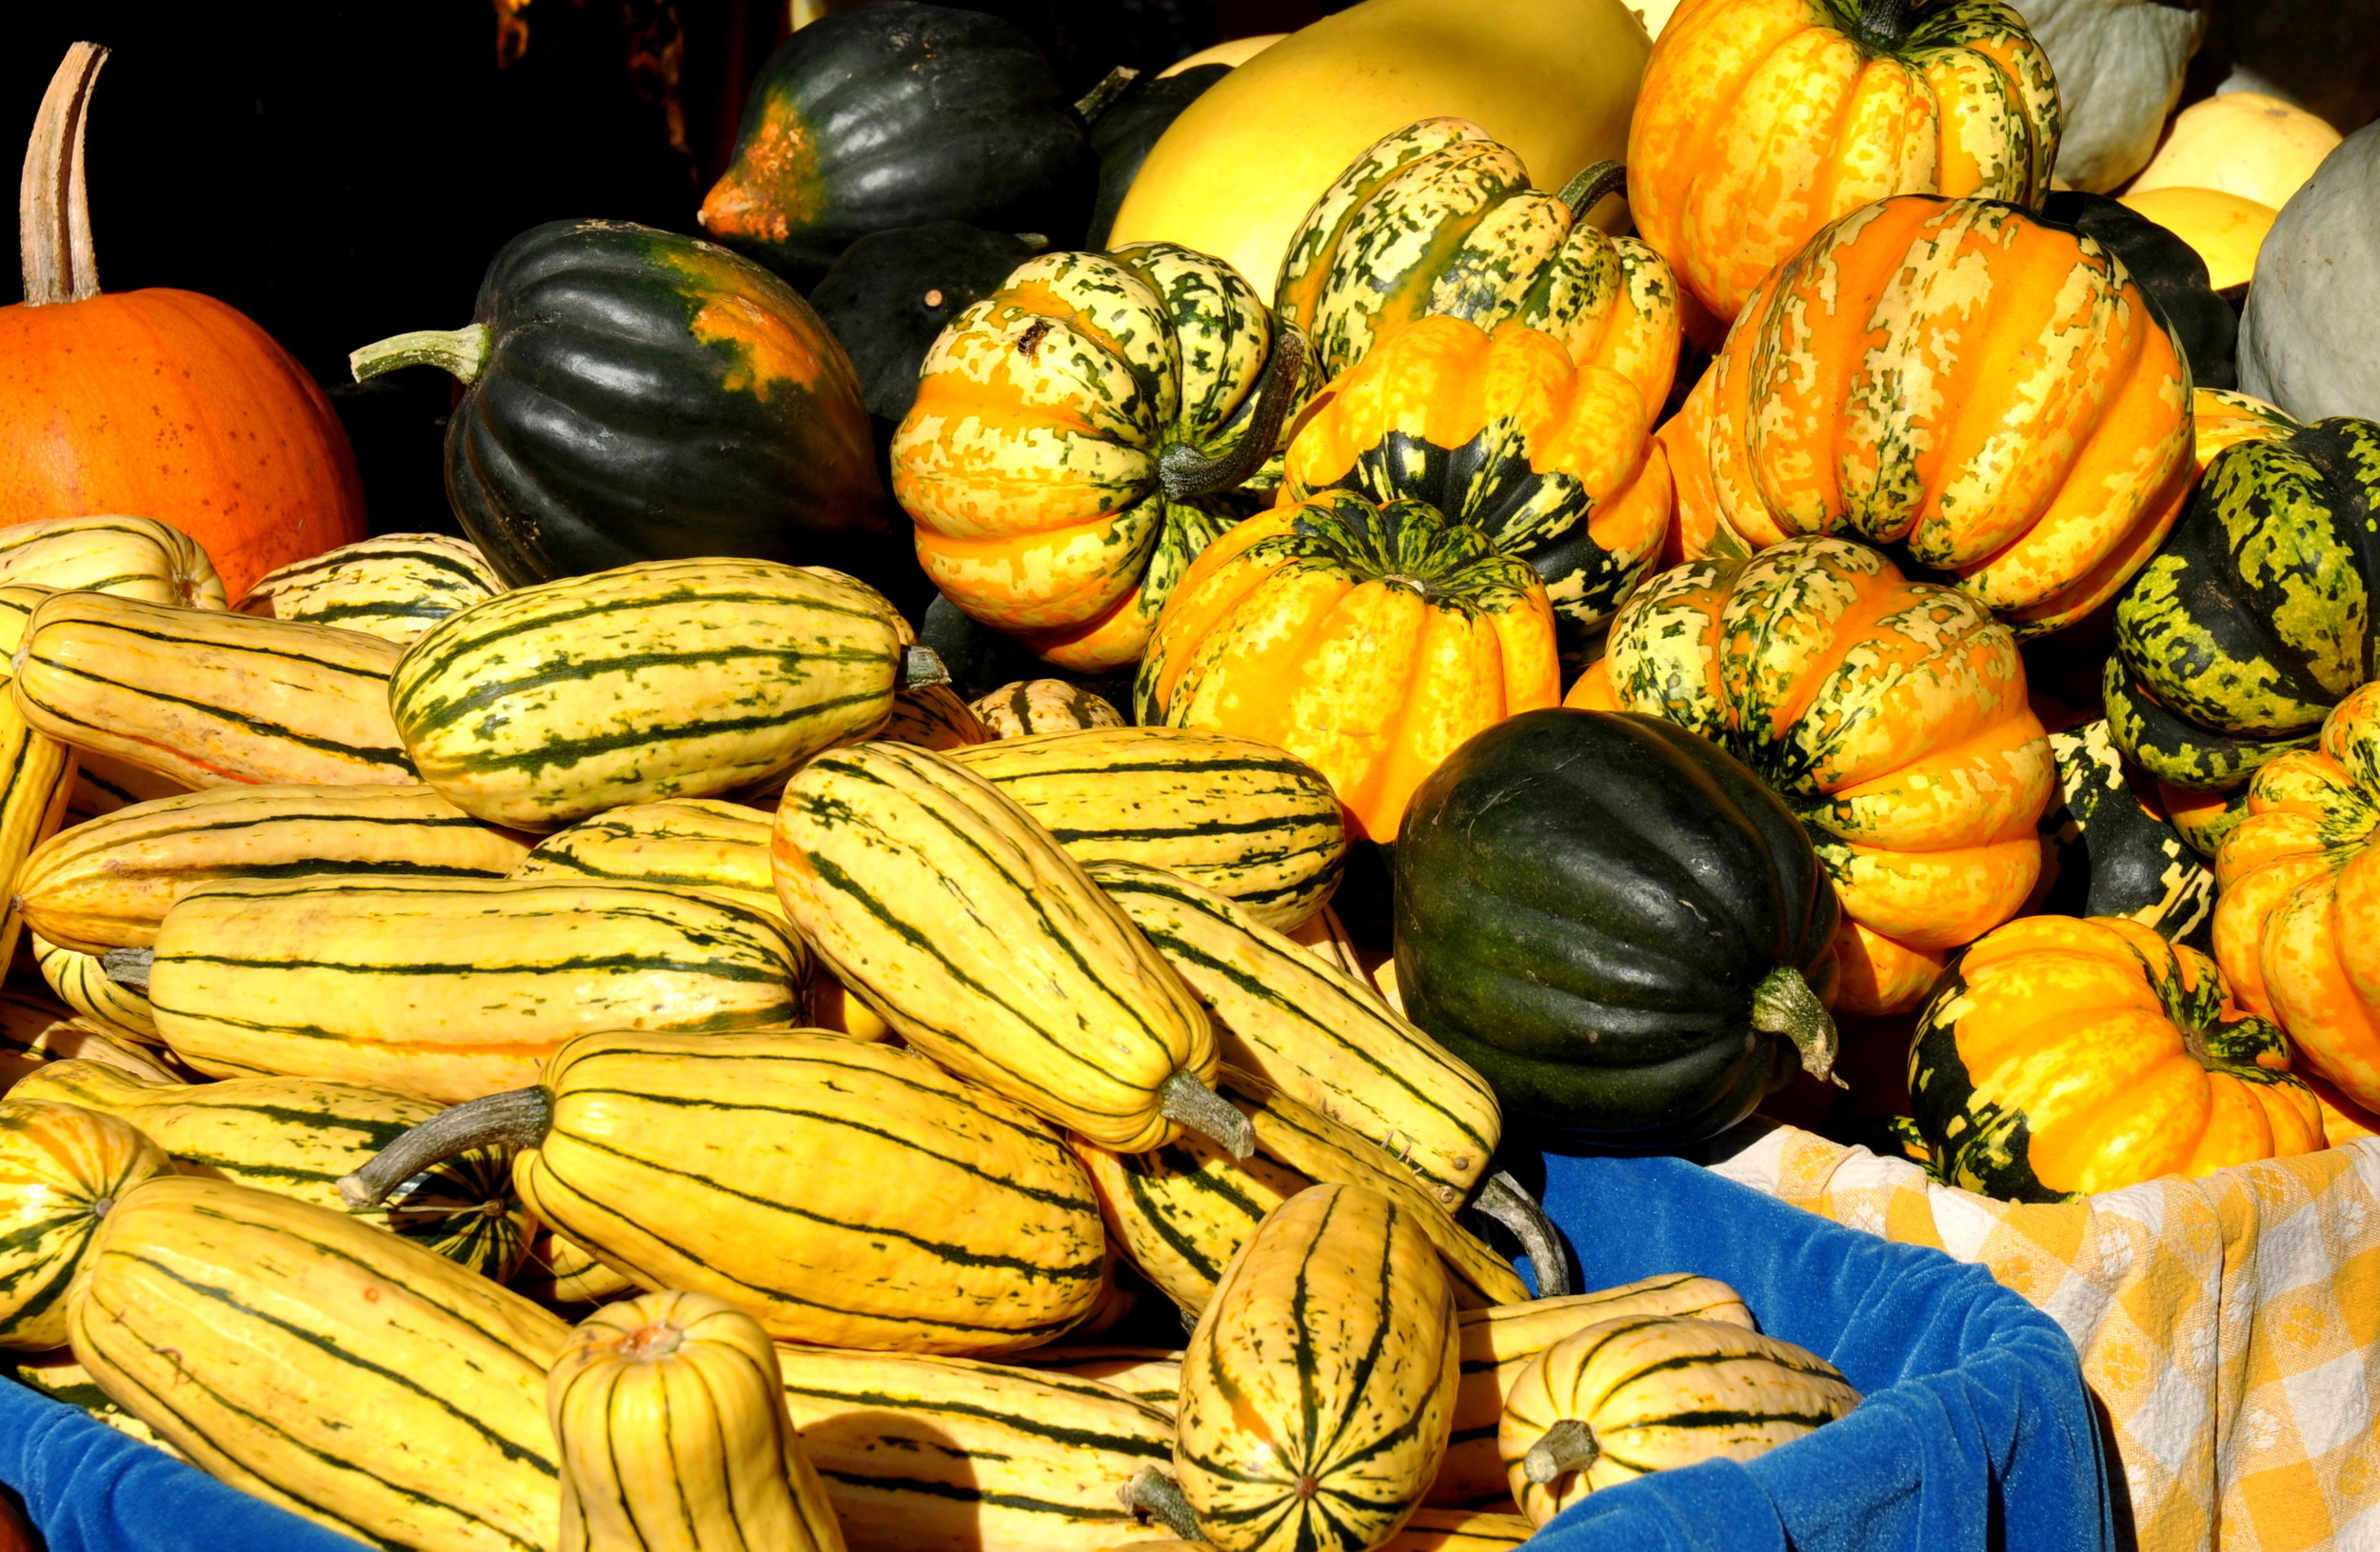 Winter squash from Colinwood Farms. Photo copyright 2013 by Zachary D. Lyons.